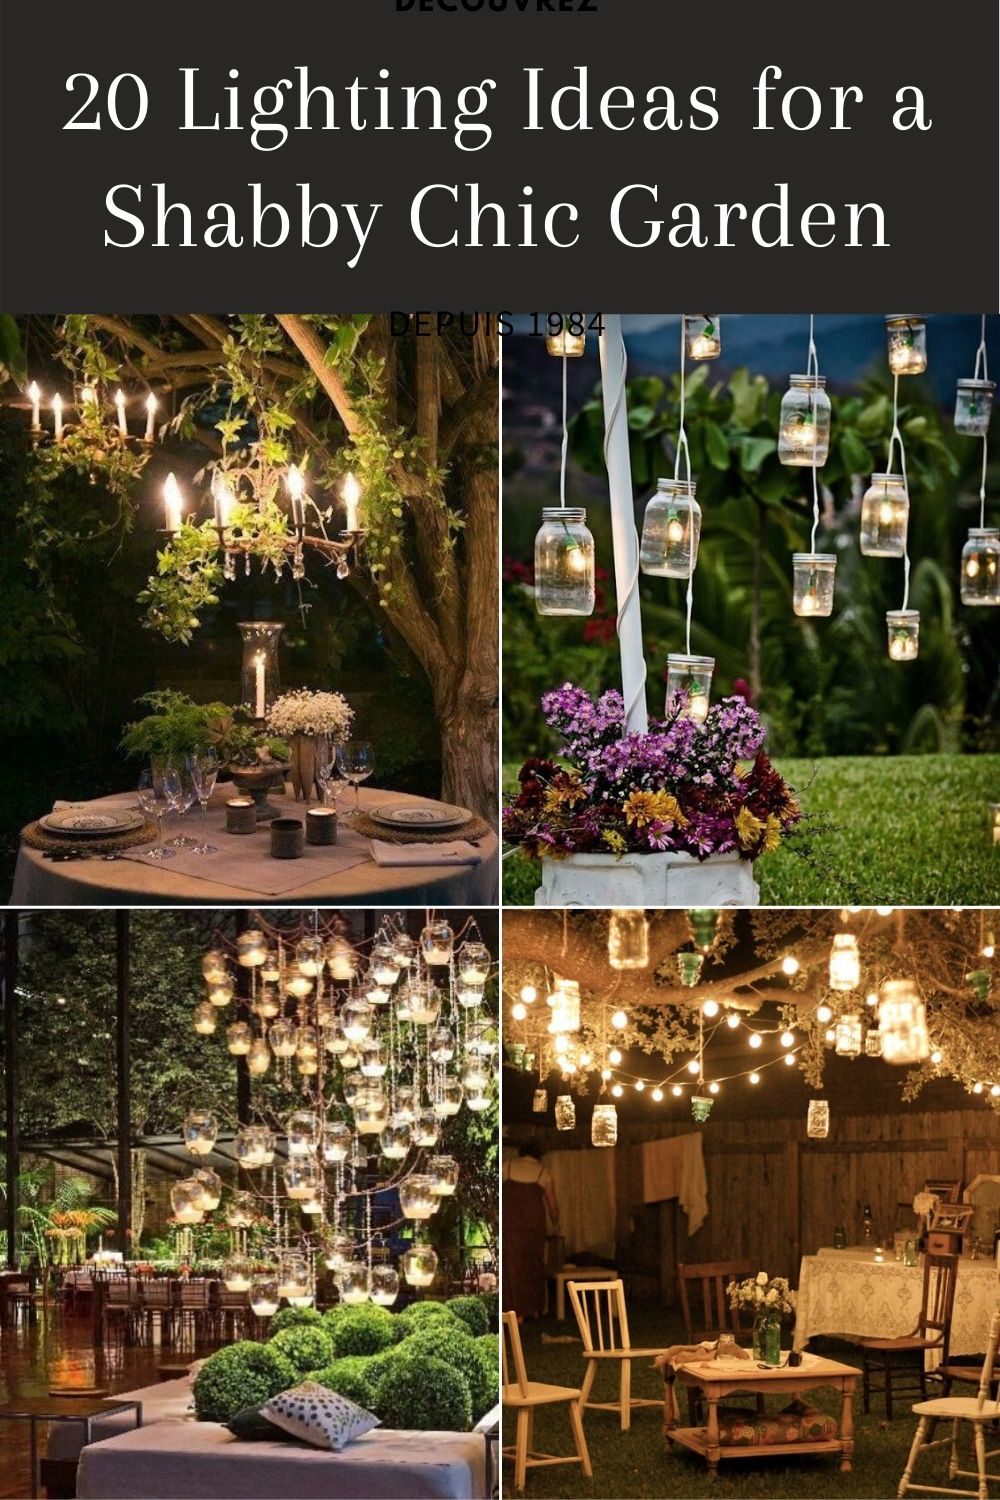 20 Amazing Outdoor Lighting Ideas For A Shabby Chic Garden